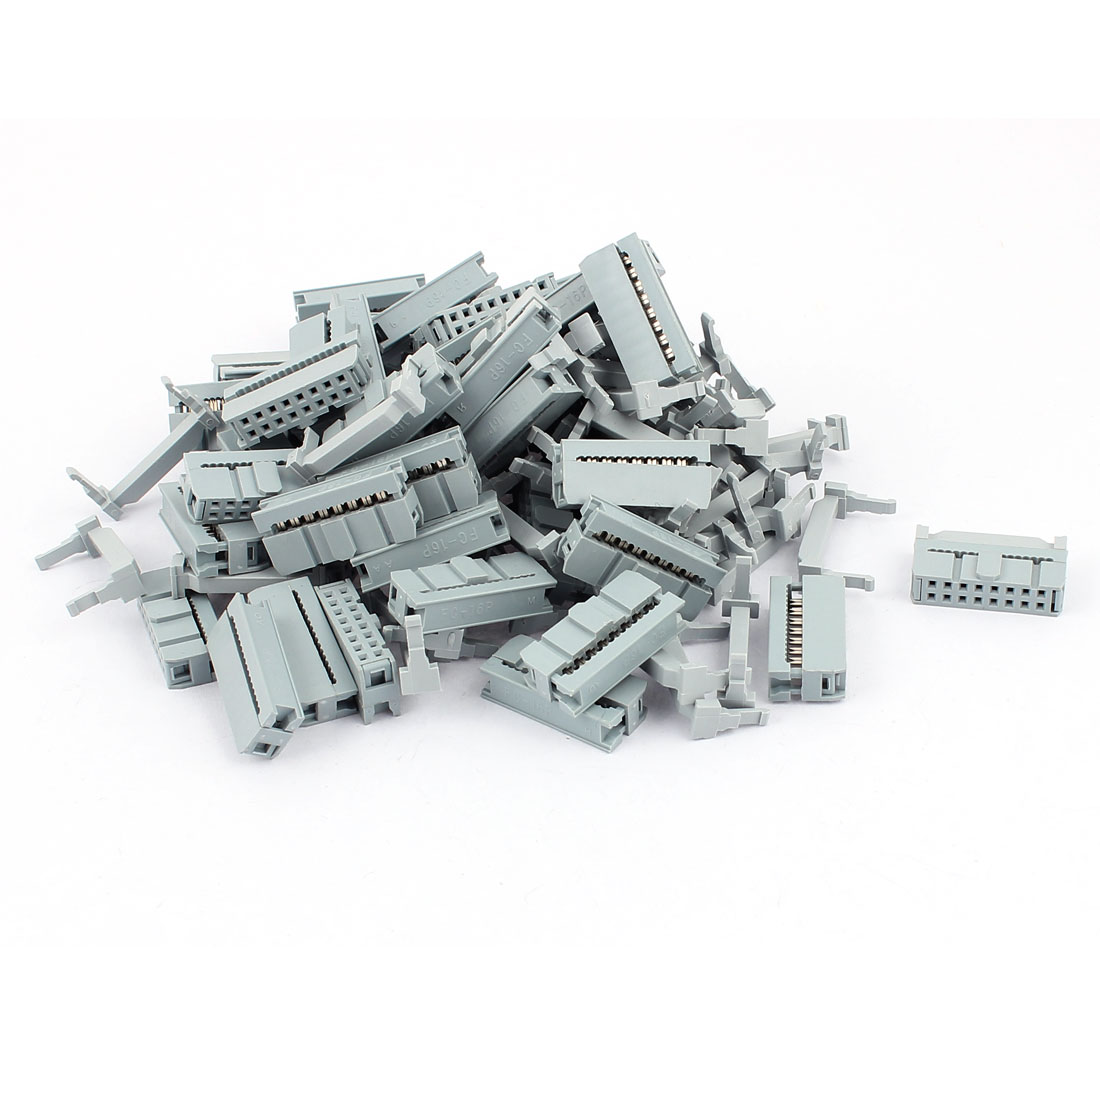 50 Pcs 2 Rows 16P FC-16P Flat Cable IDC Socket Connector w Strain Relief